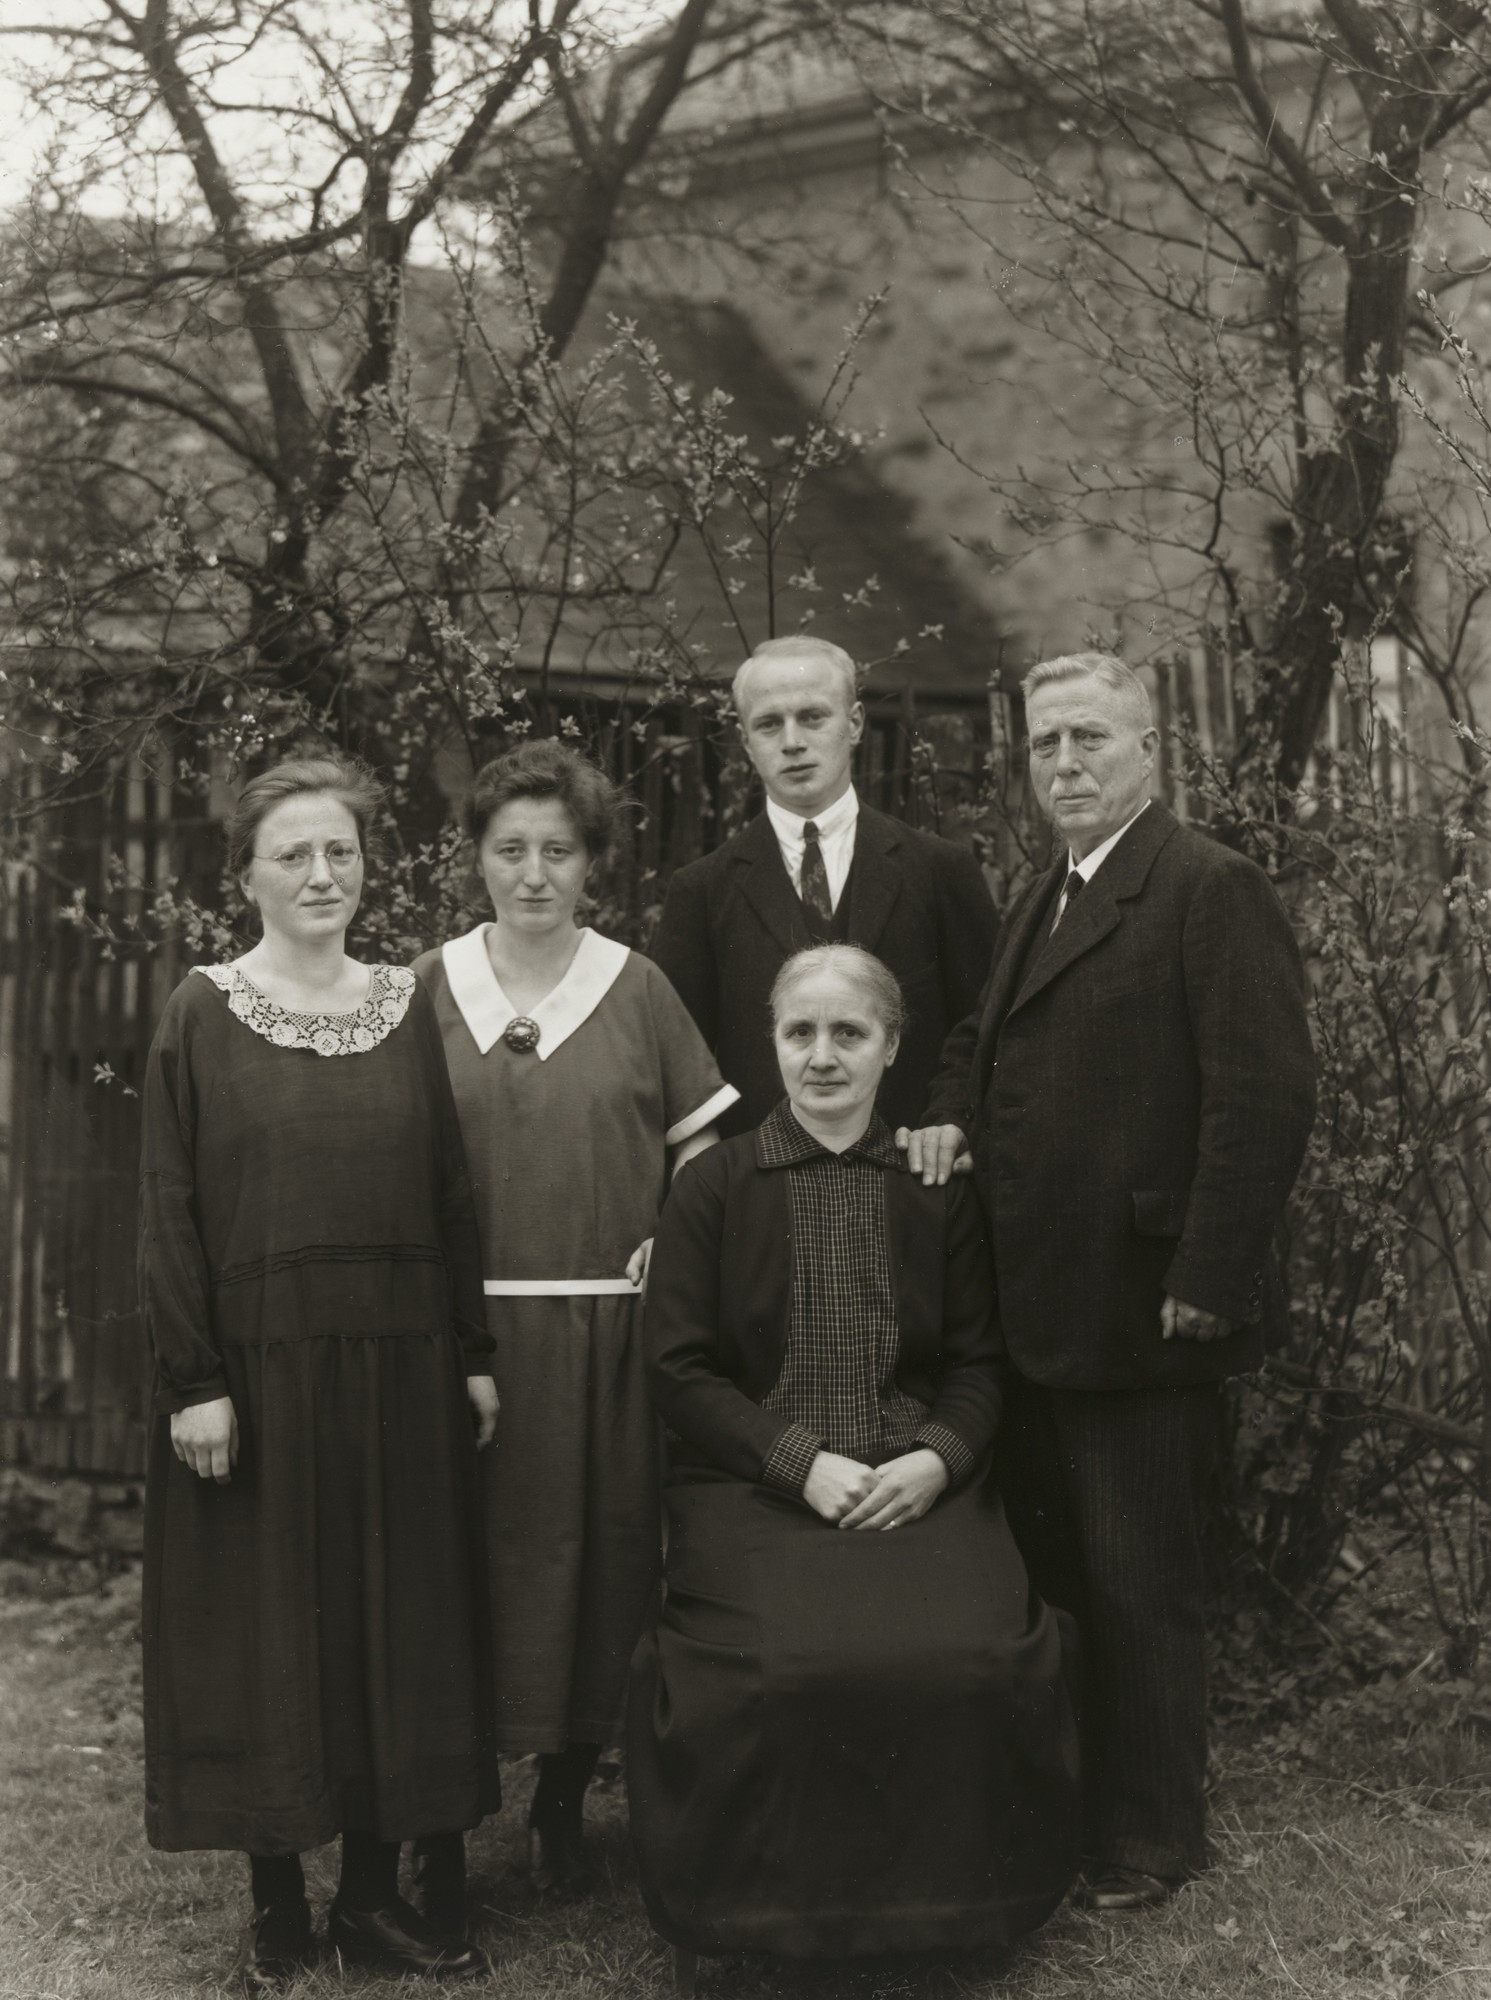 August Sander. Headmaster with his Family. c. 1930